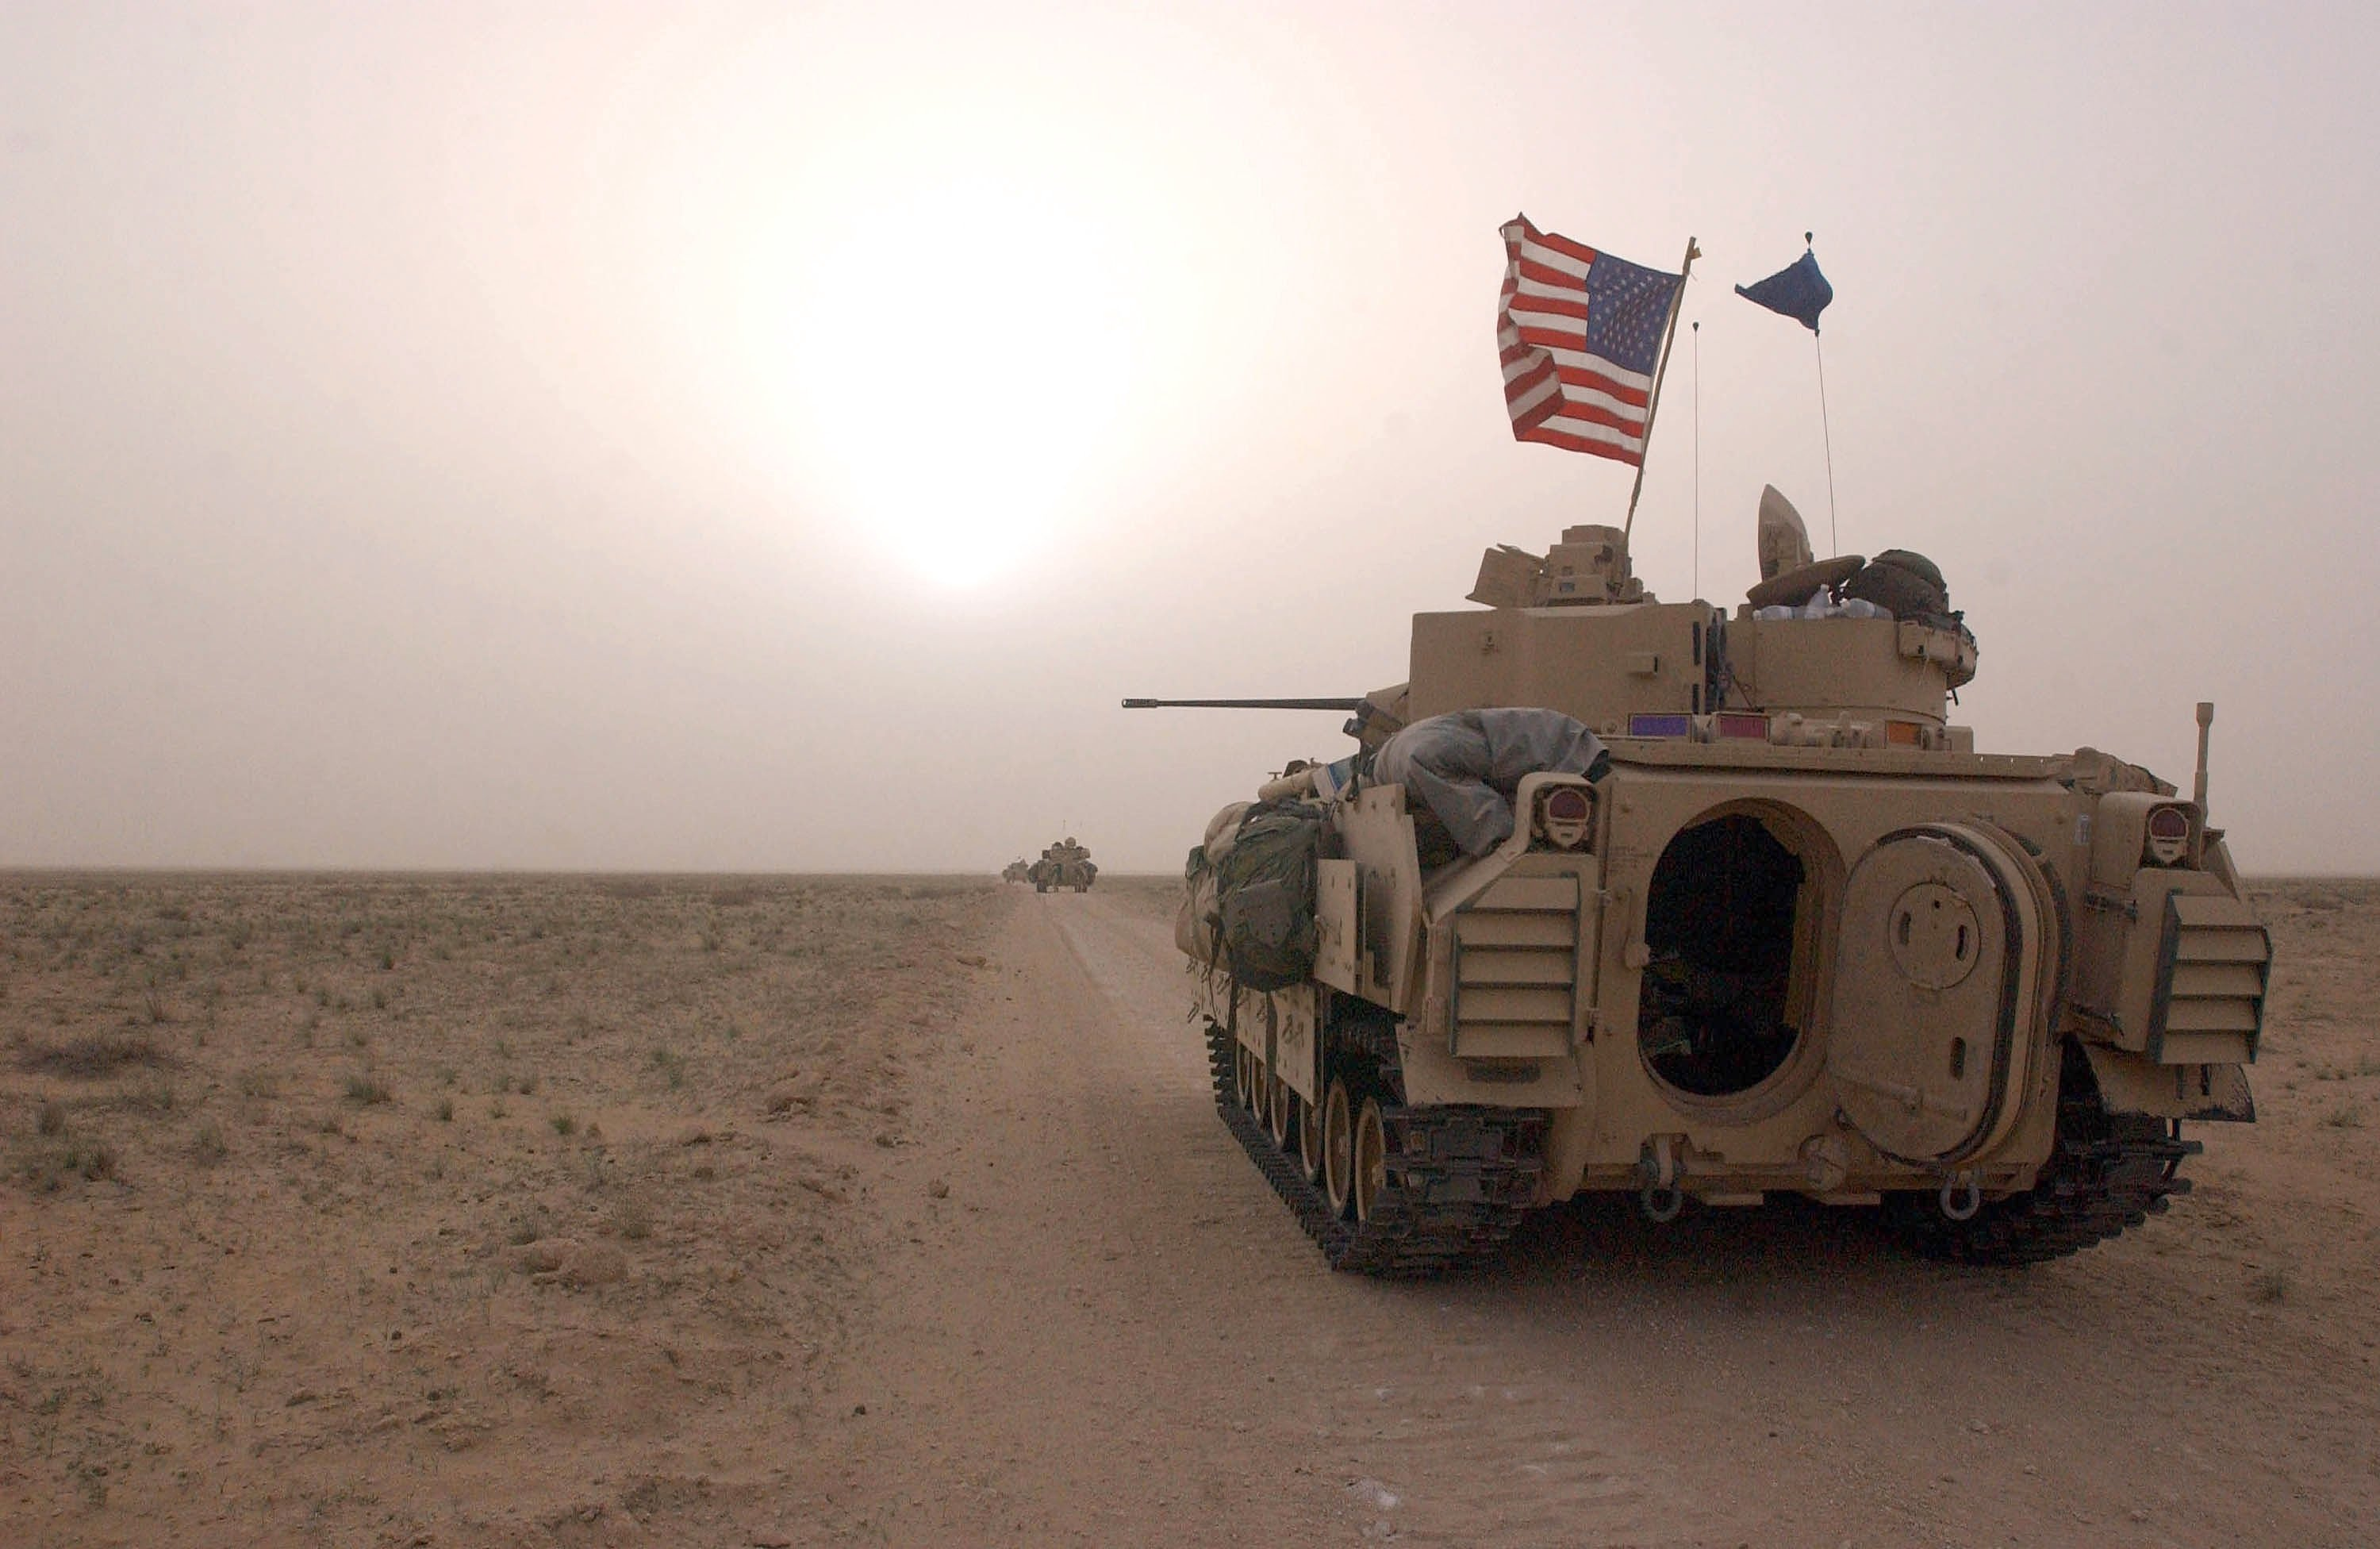 U.S. military vehicles take up a position along a road inside the demilitarized zone between Kuwait and Iraq, March 19, 2003. (Photo by Getty Images)